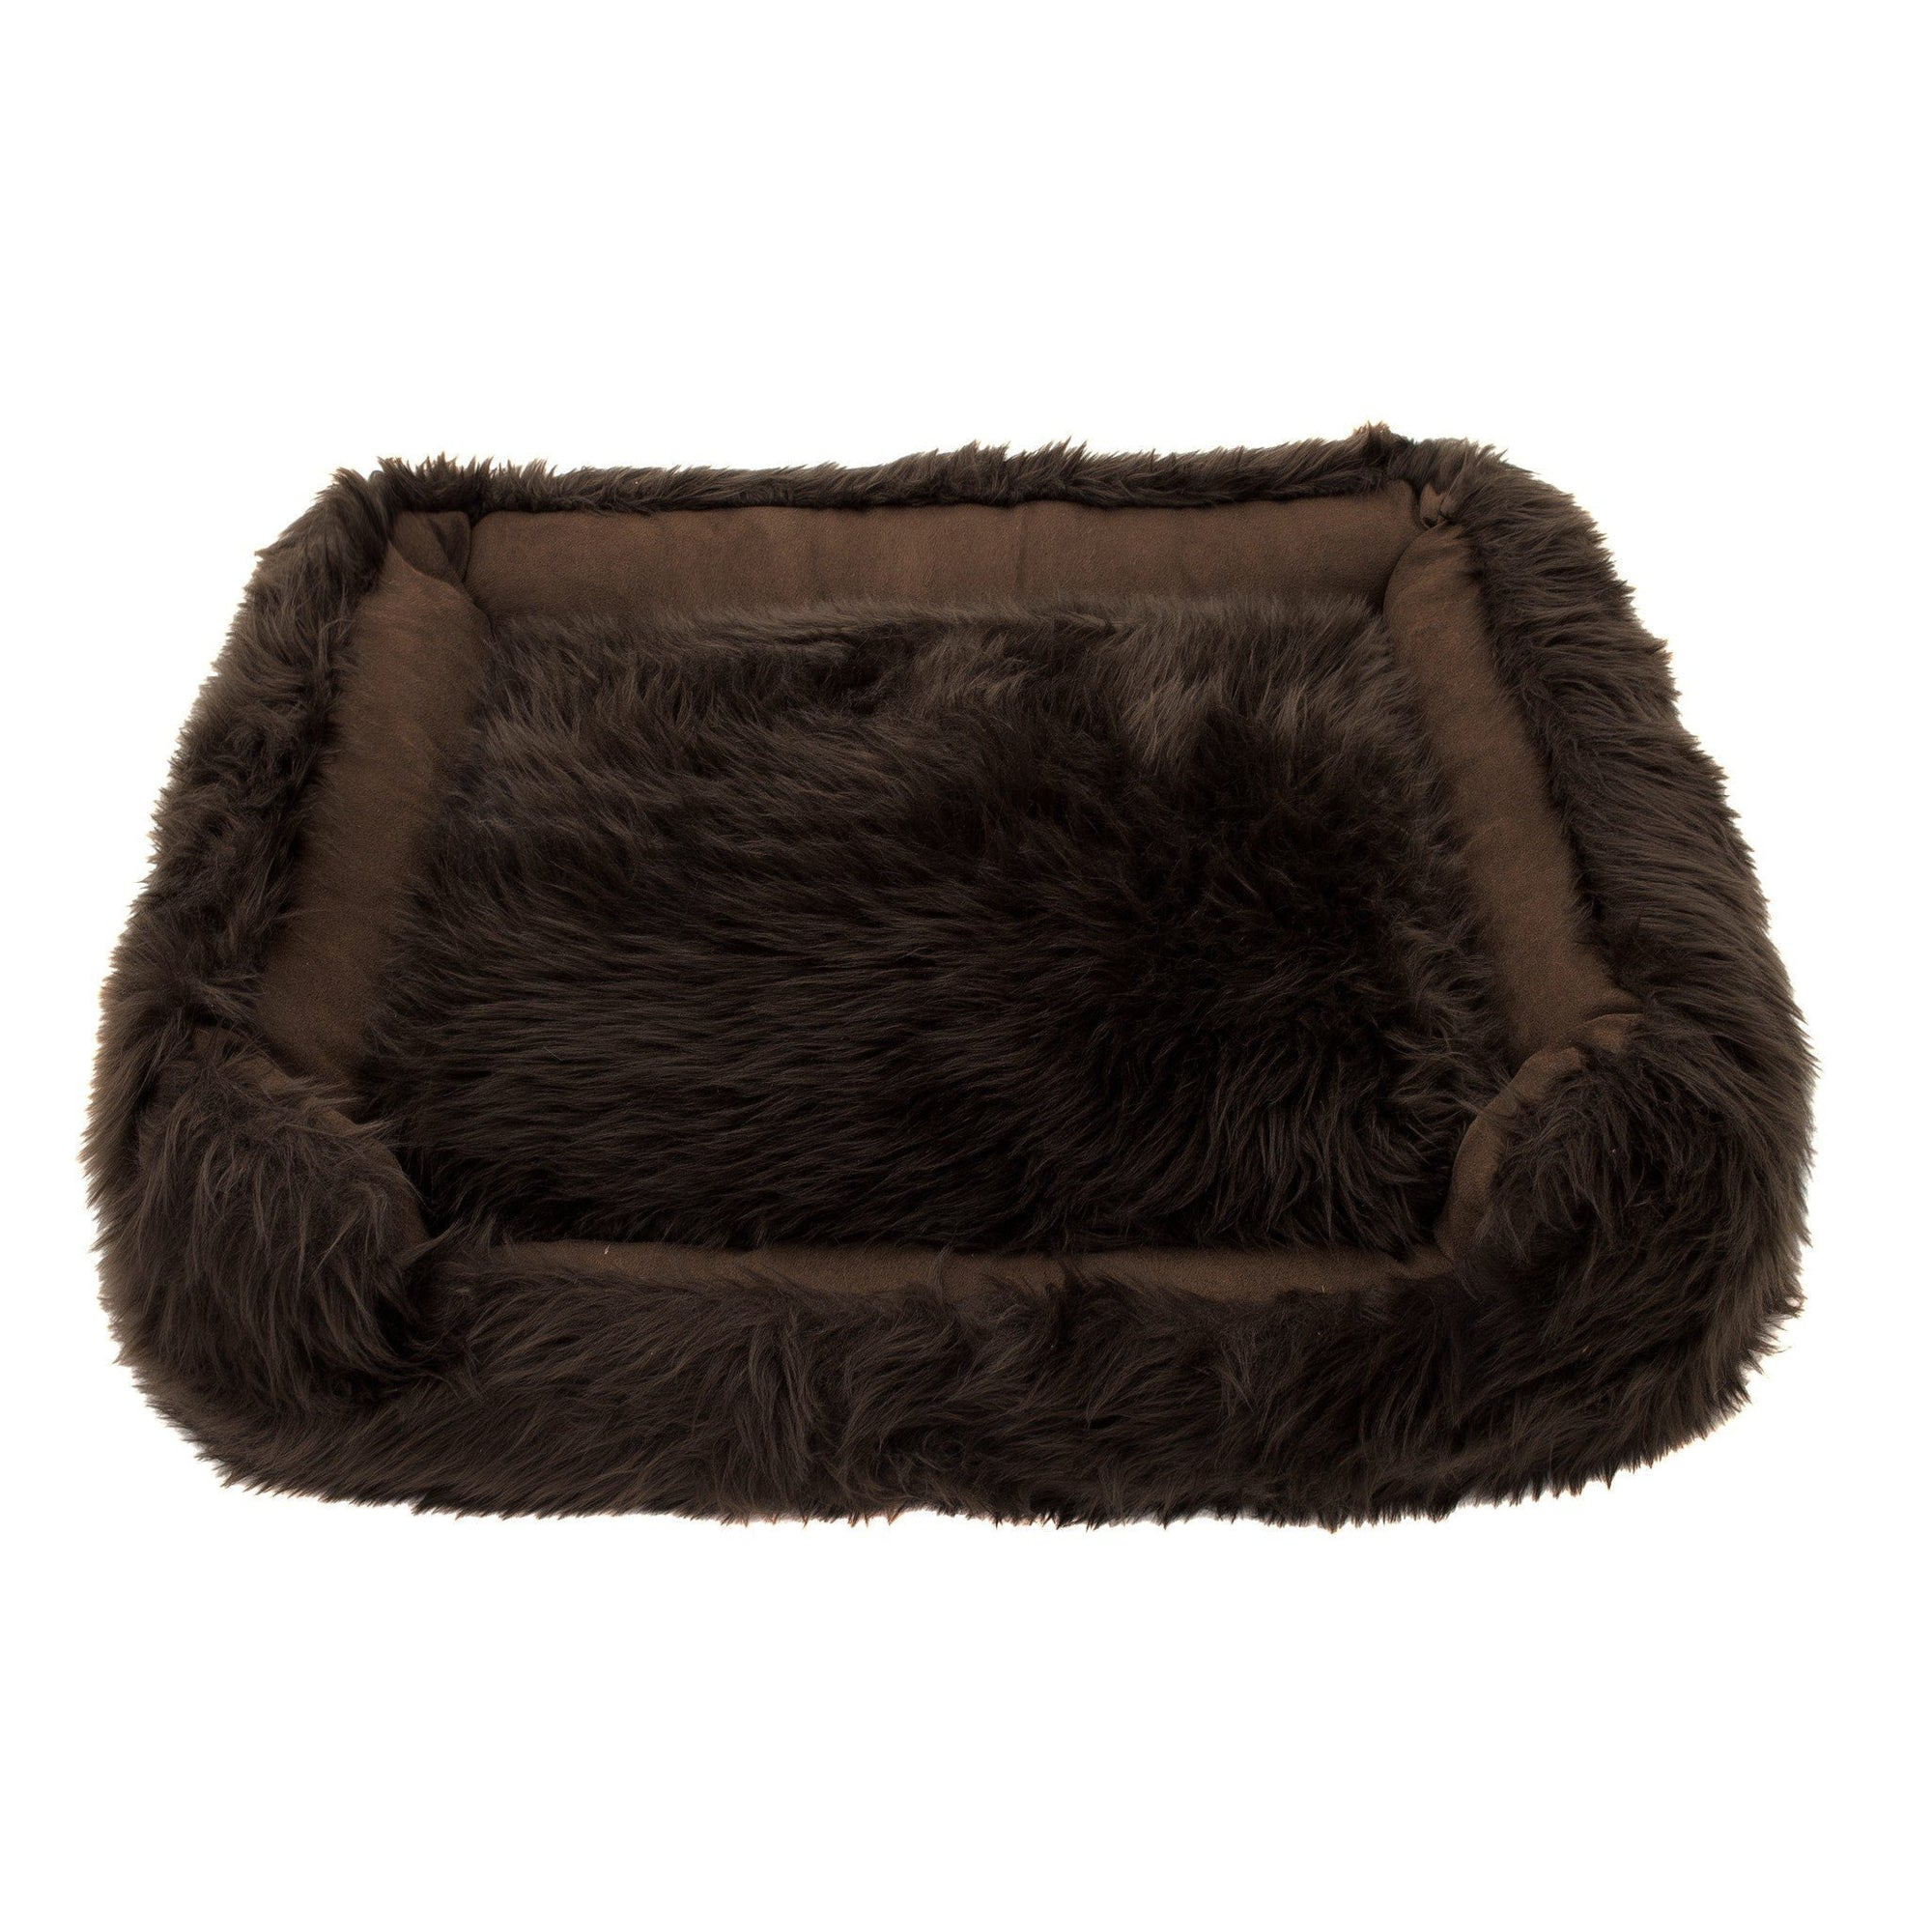 uk in dog bed fabulous the beds luxury handmade stirling company